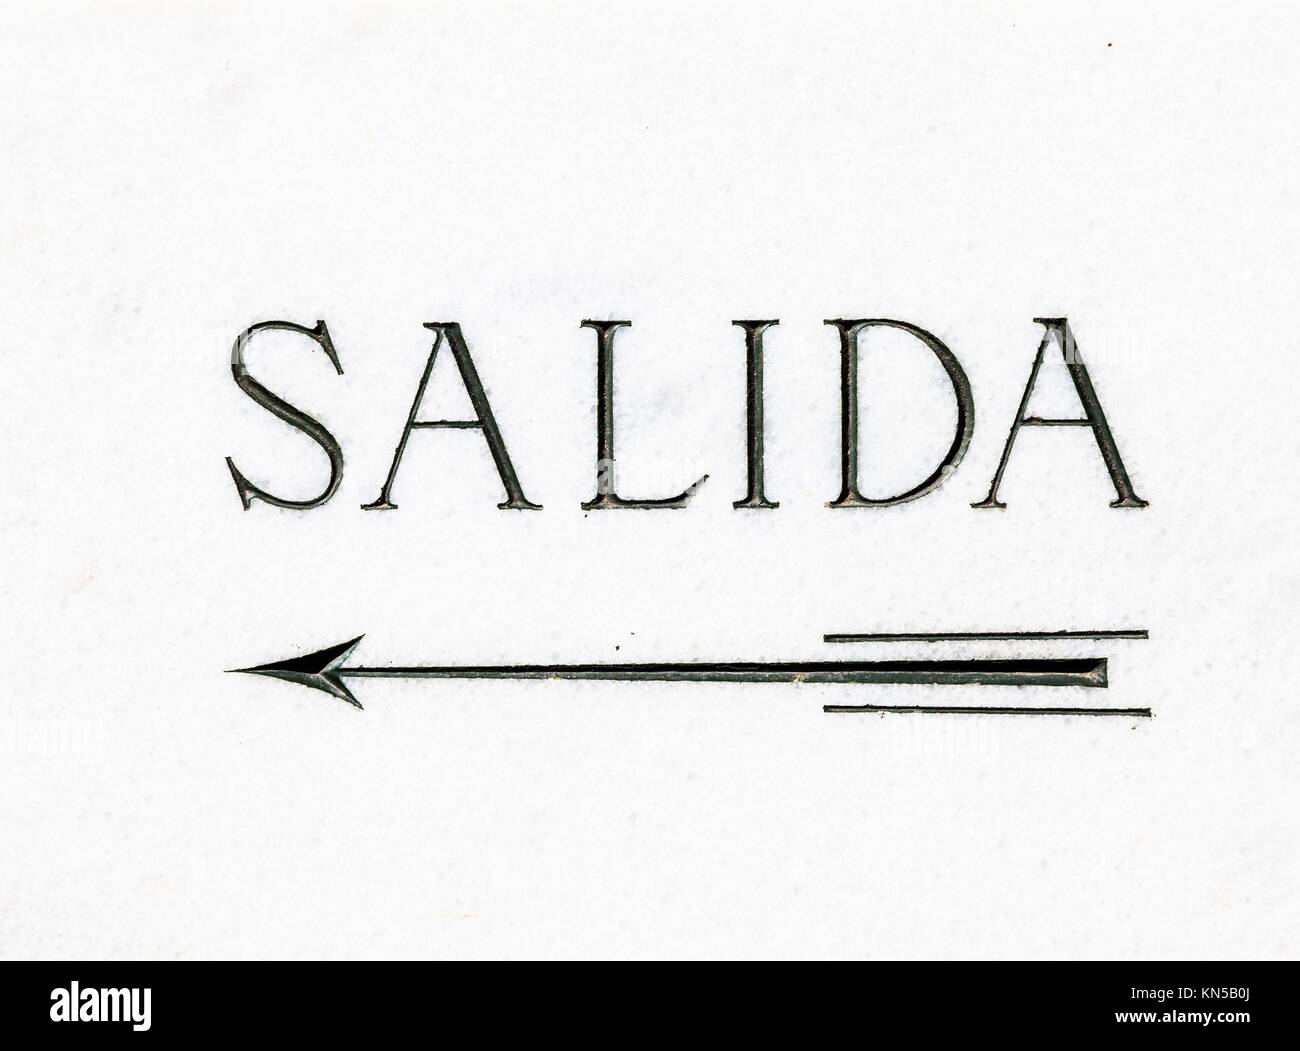 Simple marble cartel with the word Salida (Exit in Spanish). - Stock Image